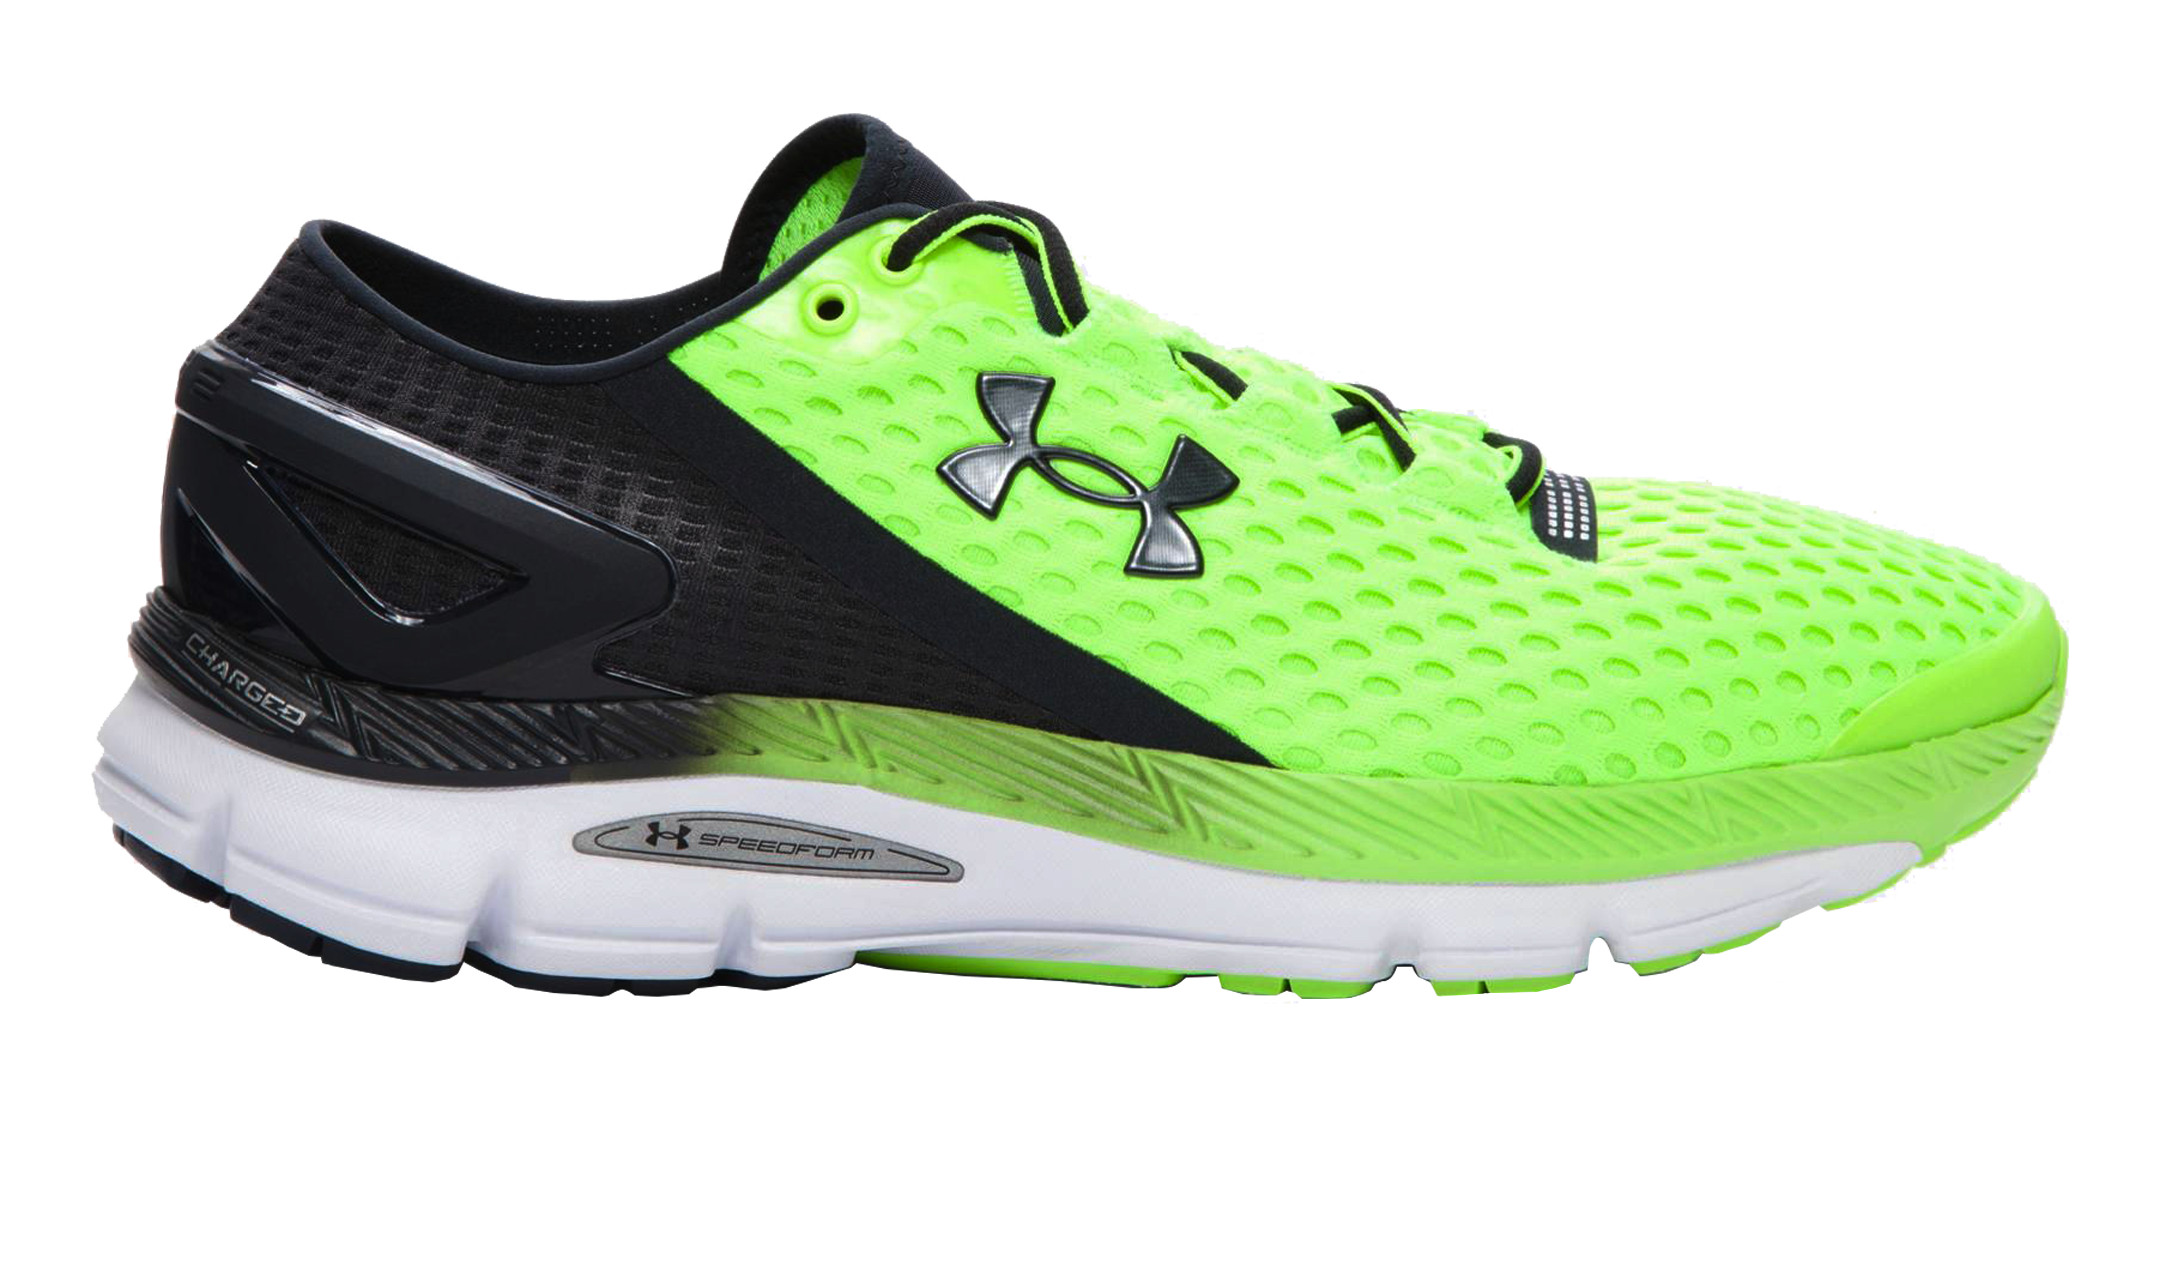 Under Armour Speedform Gemini 2 - Believe In The Run